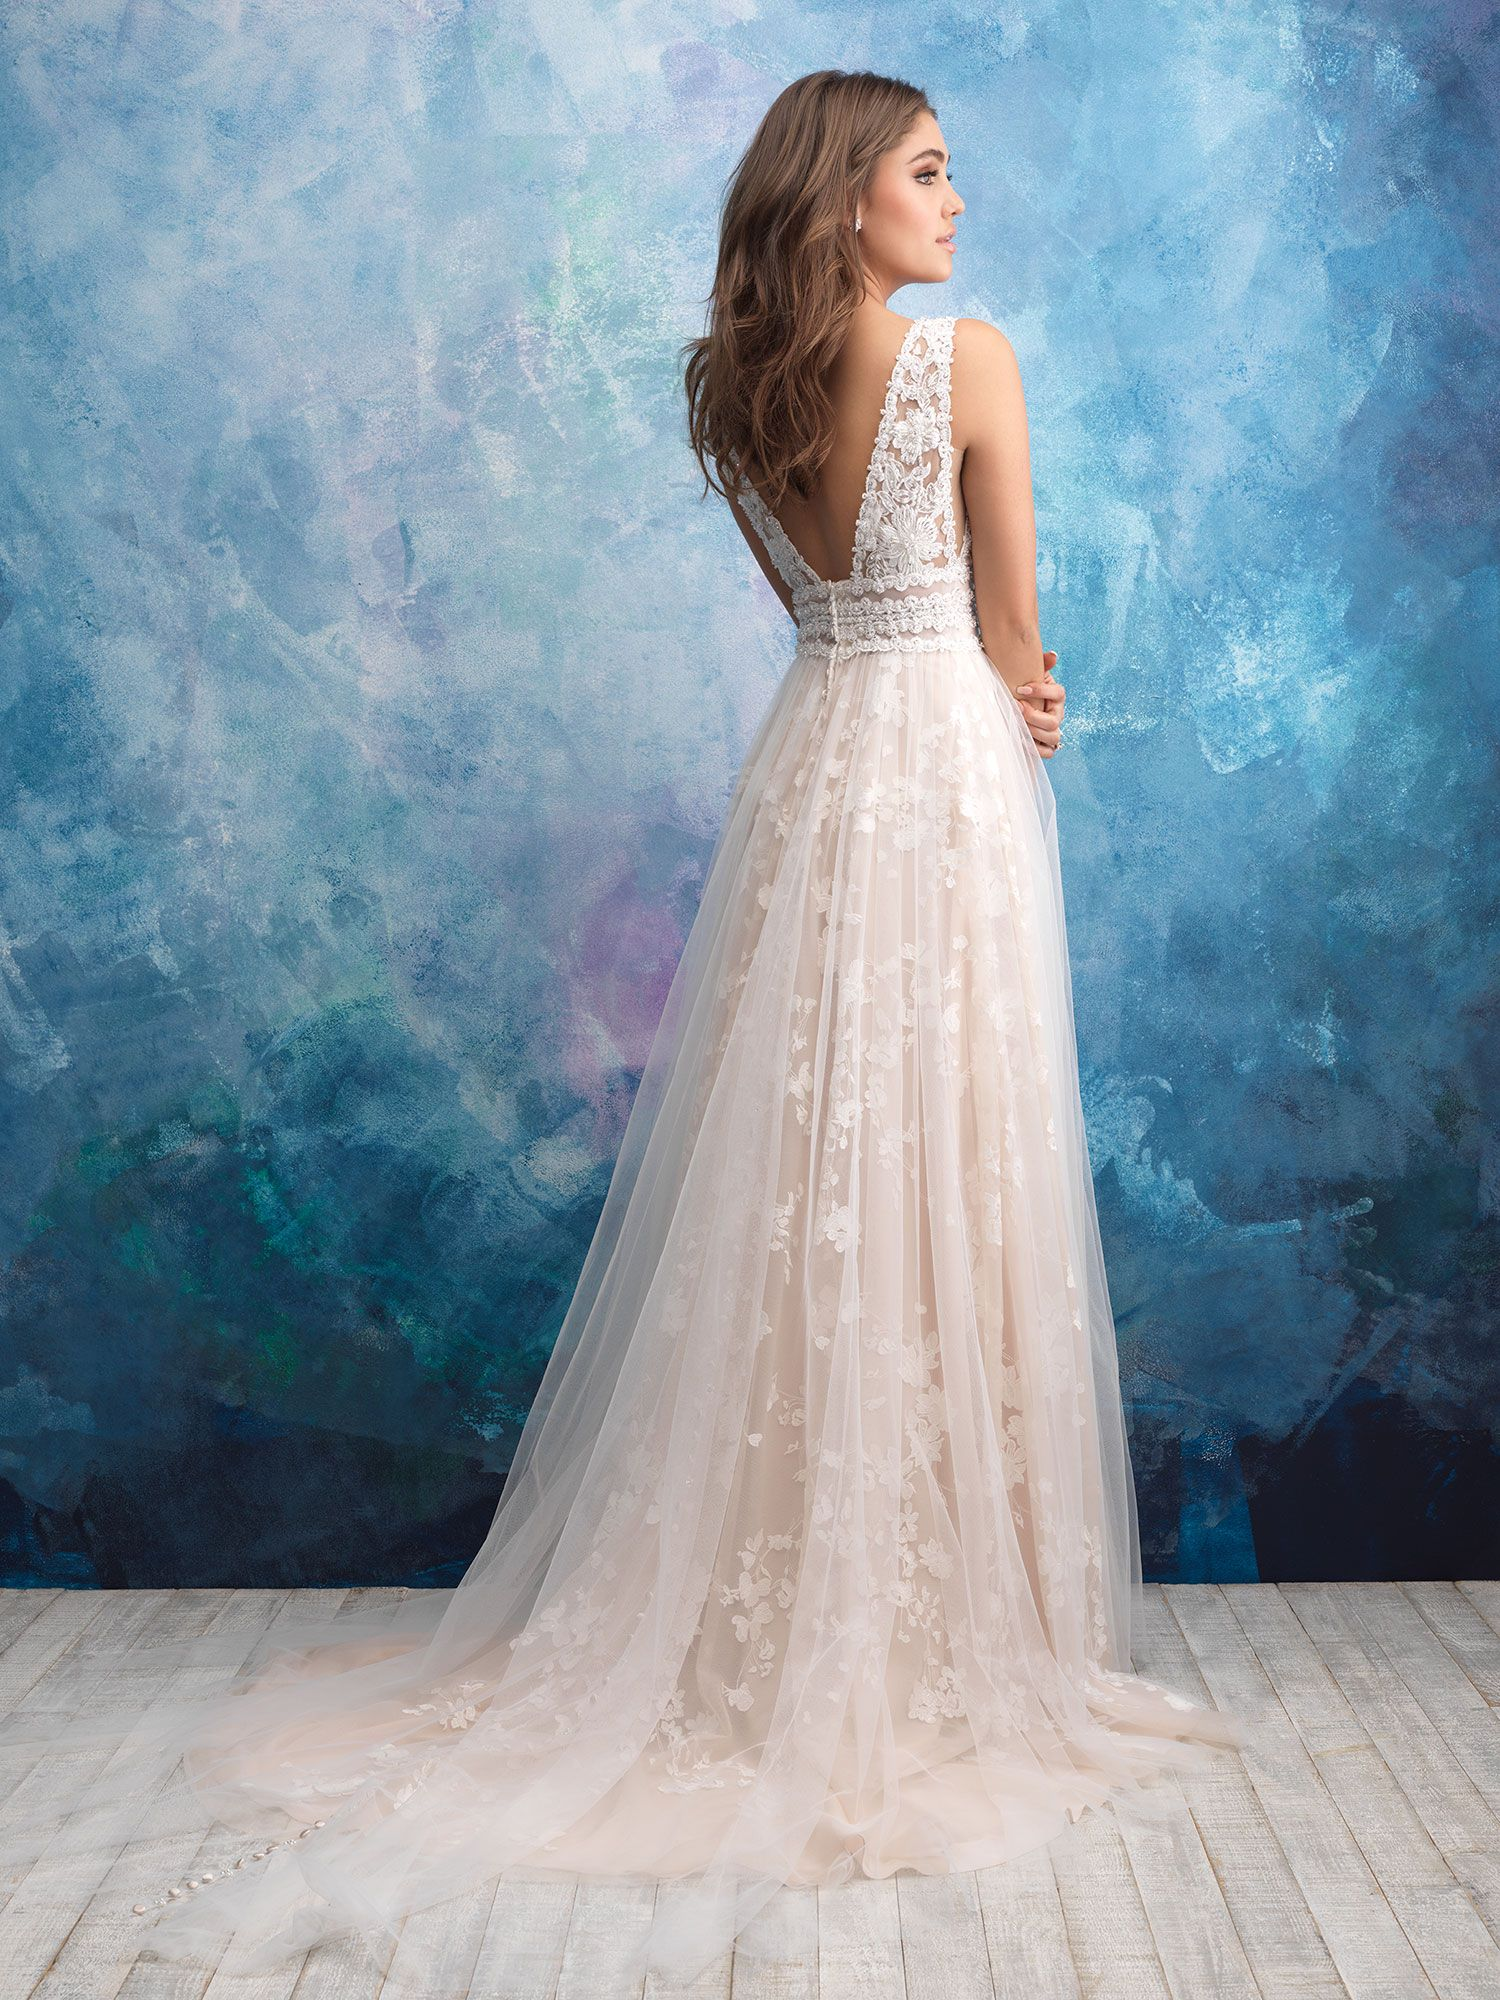 Eden Hoops A Daisy Bridal Boutique In 2020 Allure Bridal Gowns Allure Bridal Wedding Dresses